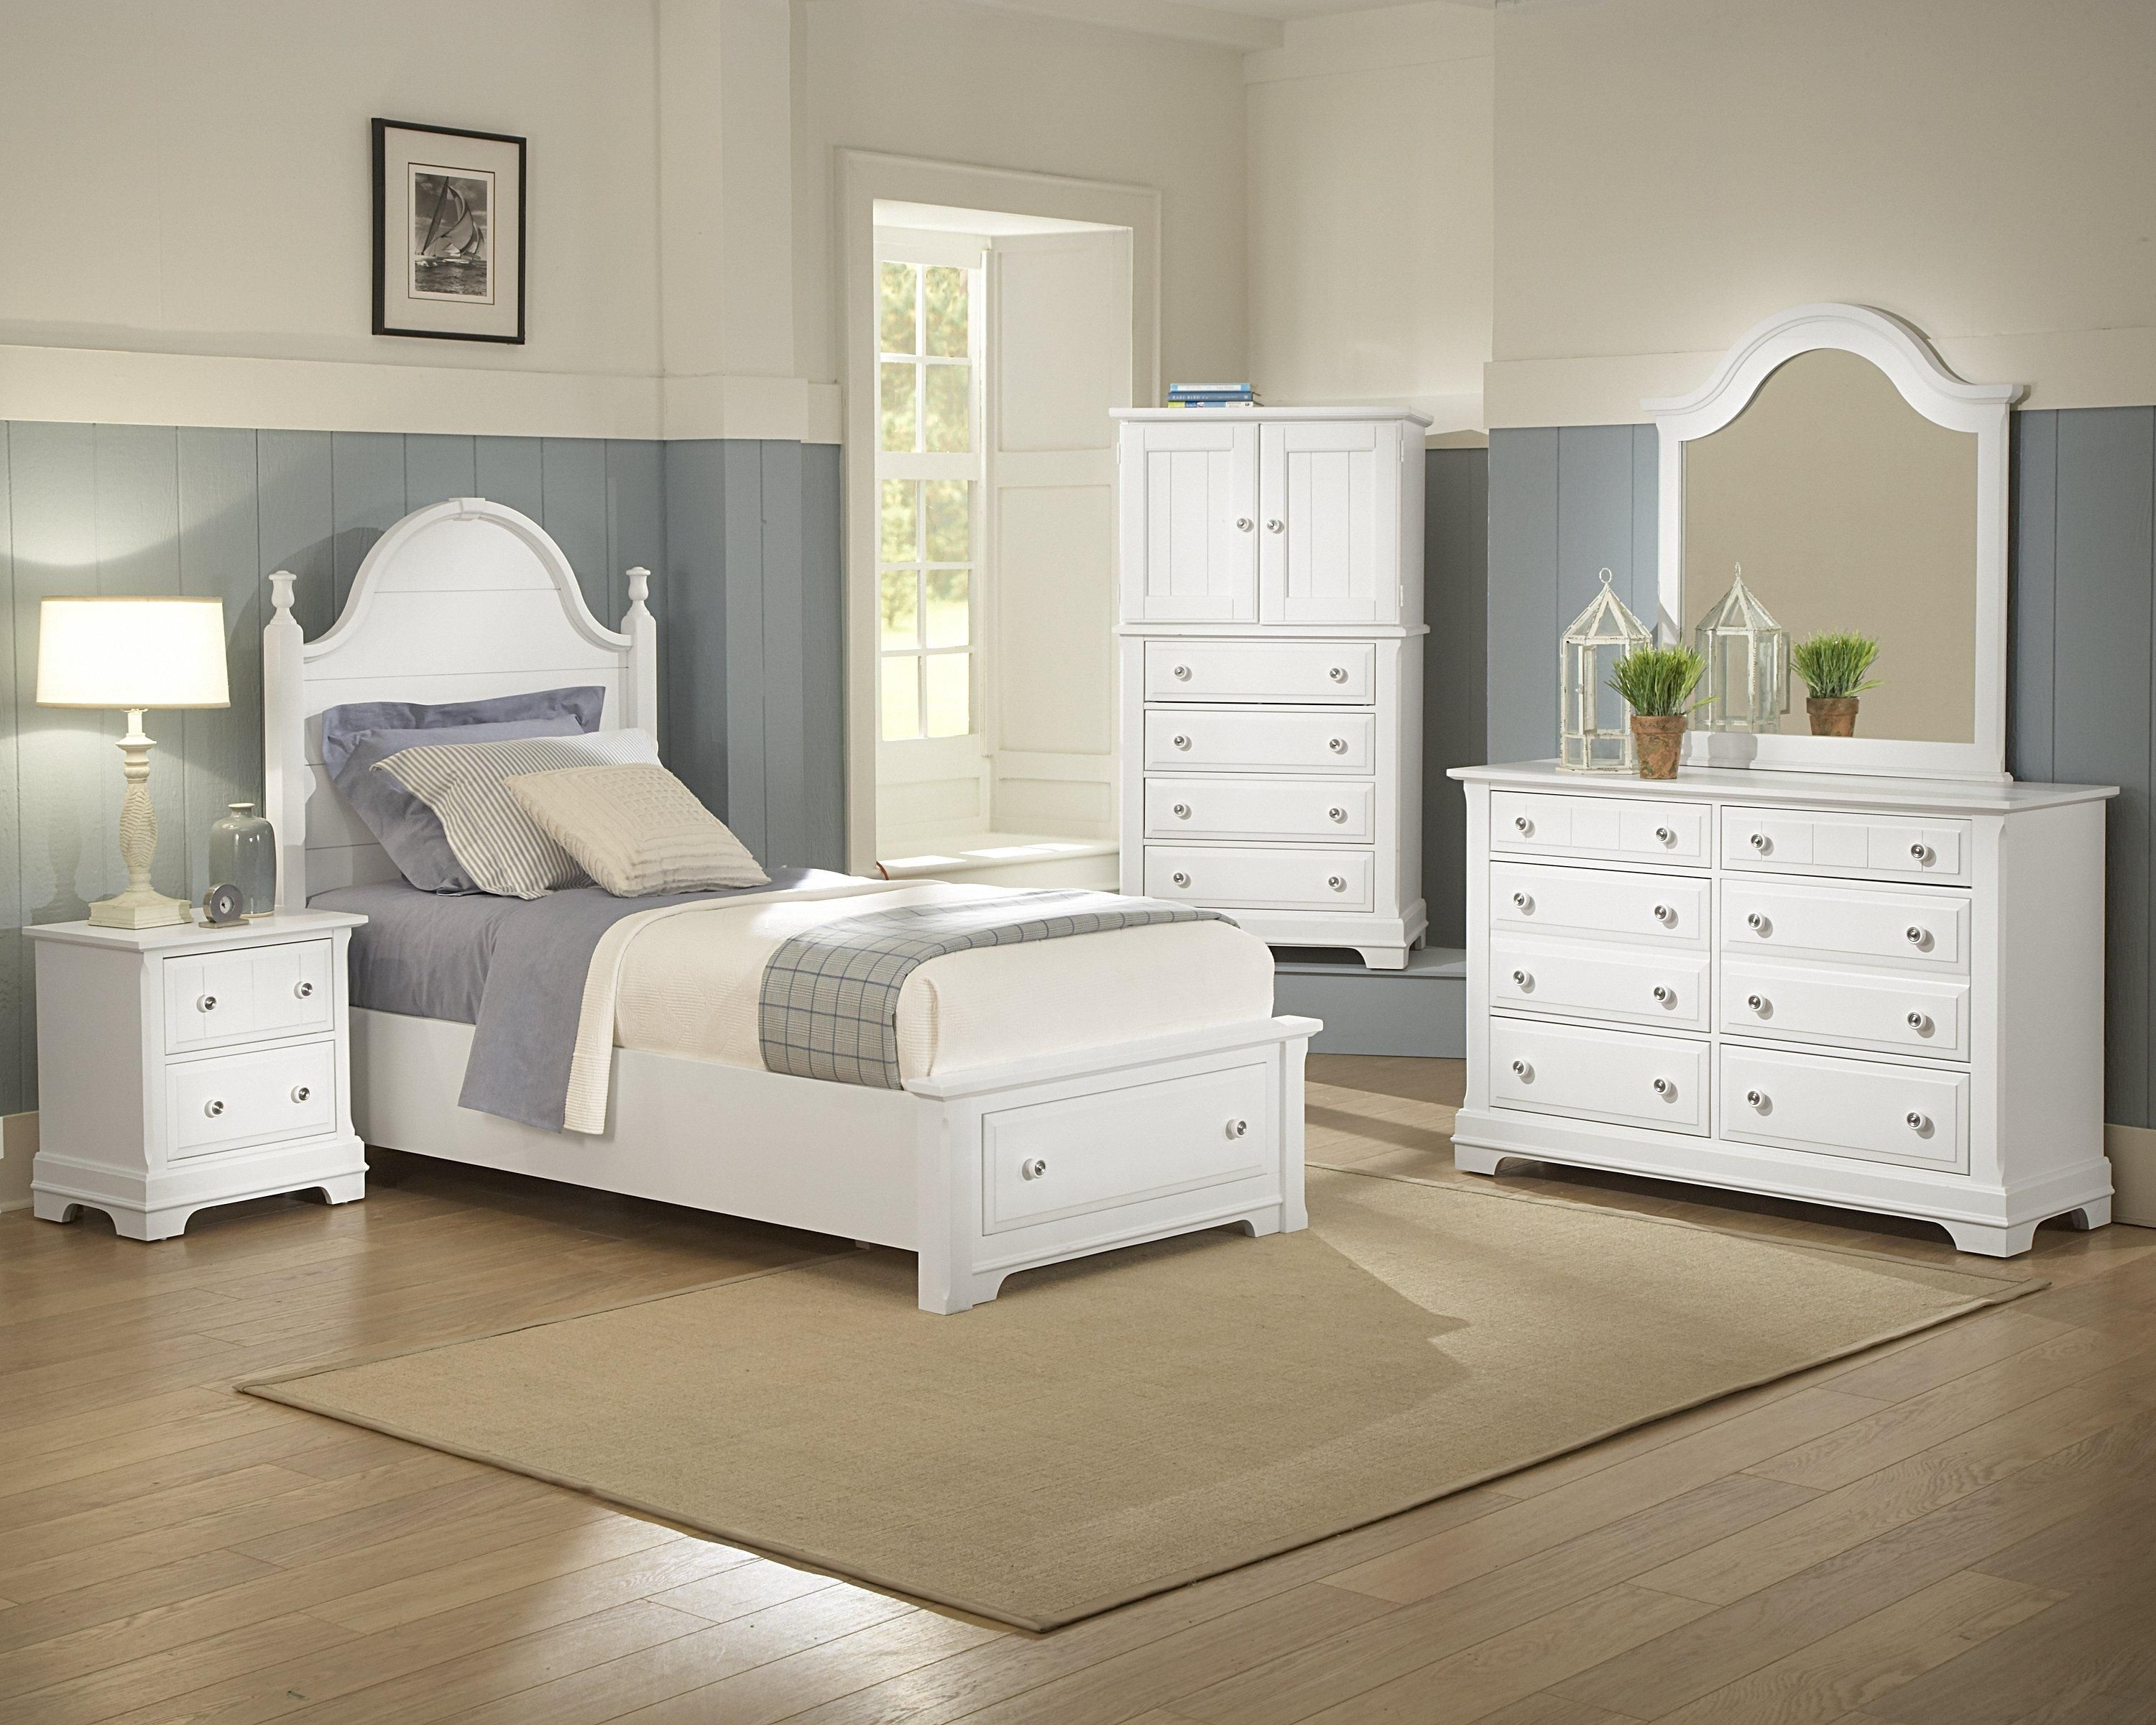 white black queen bed life line sets bedroom xiorex set elvis